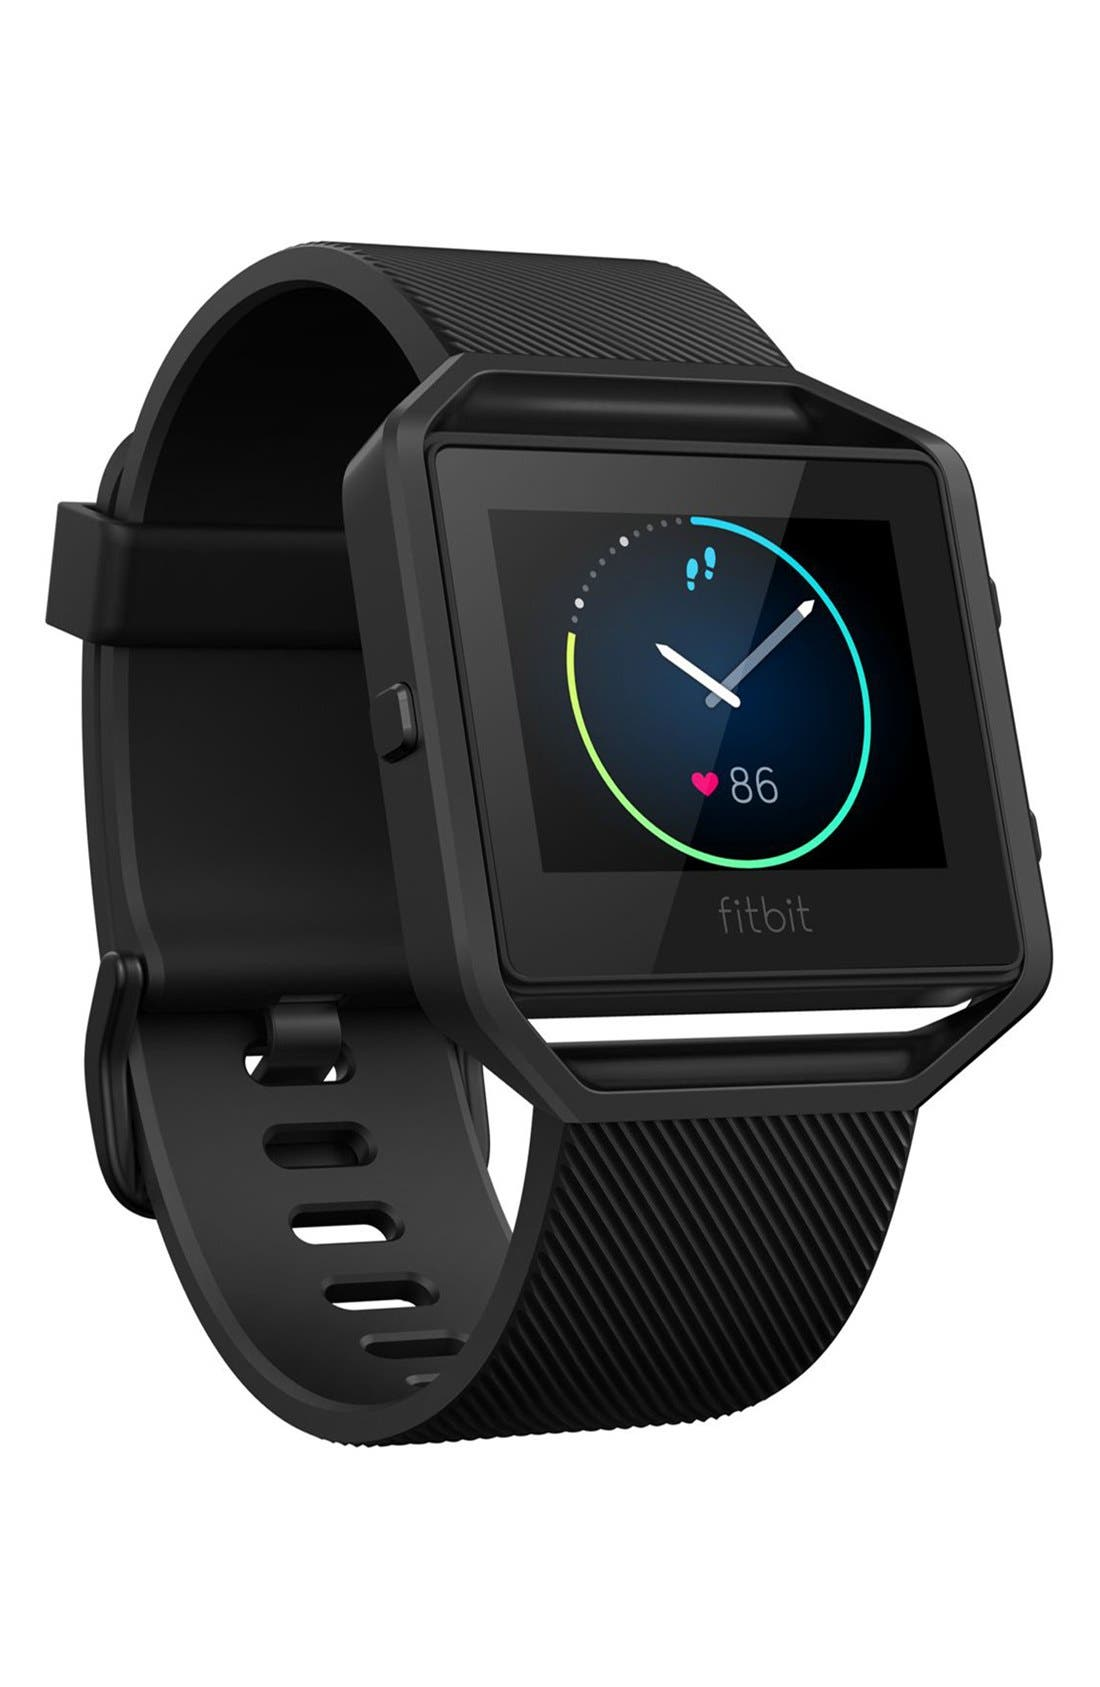 Alternate Image 1 Selected - Fitbit Blaze Smart Fitness Watch (Special Edition)